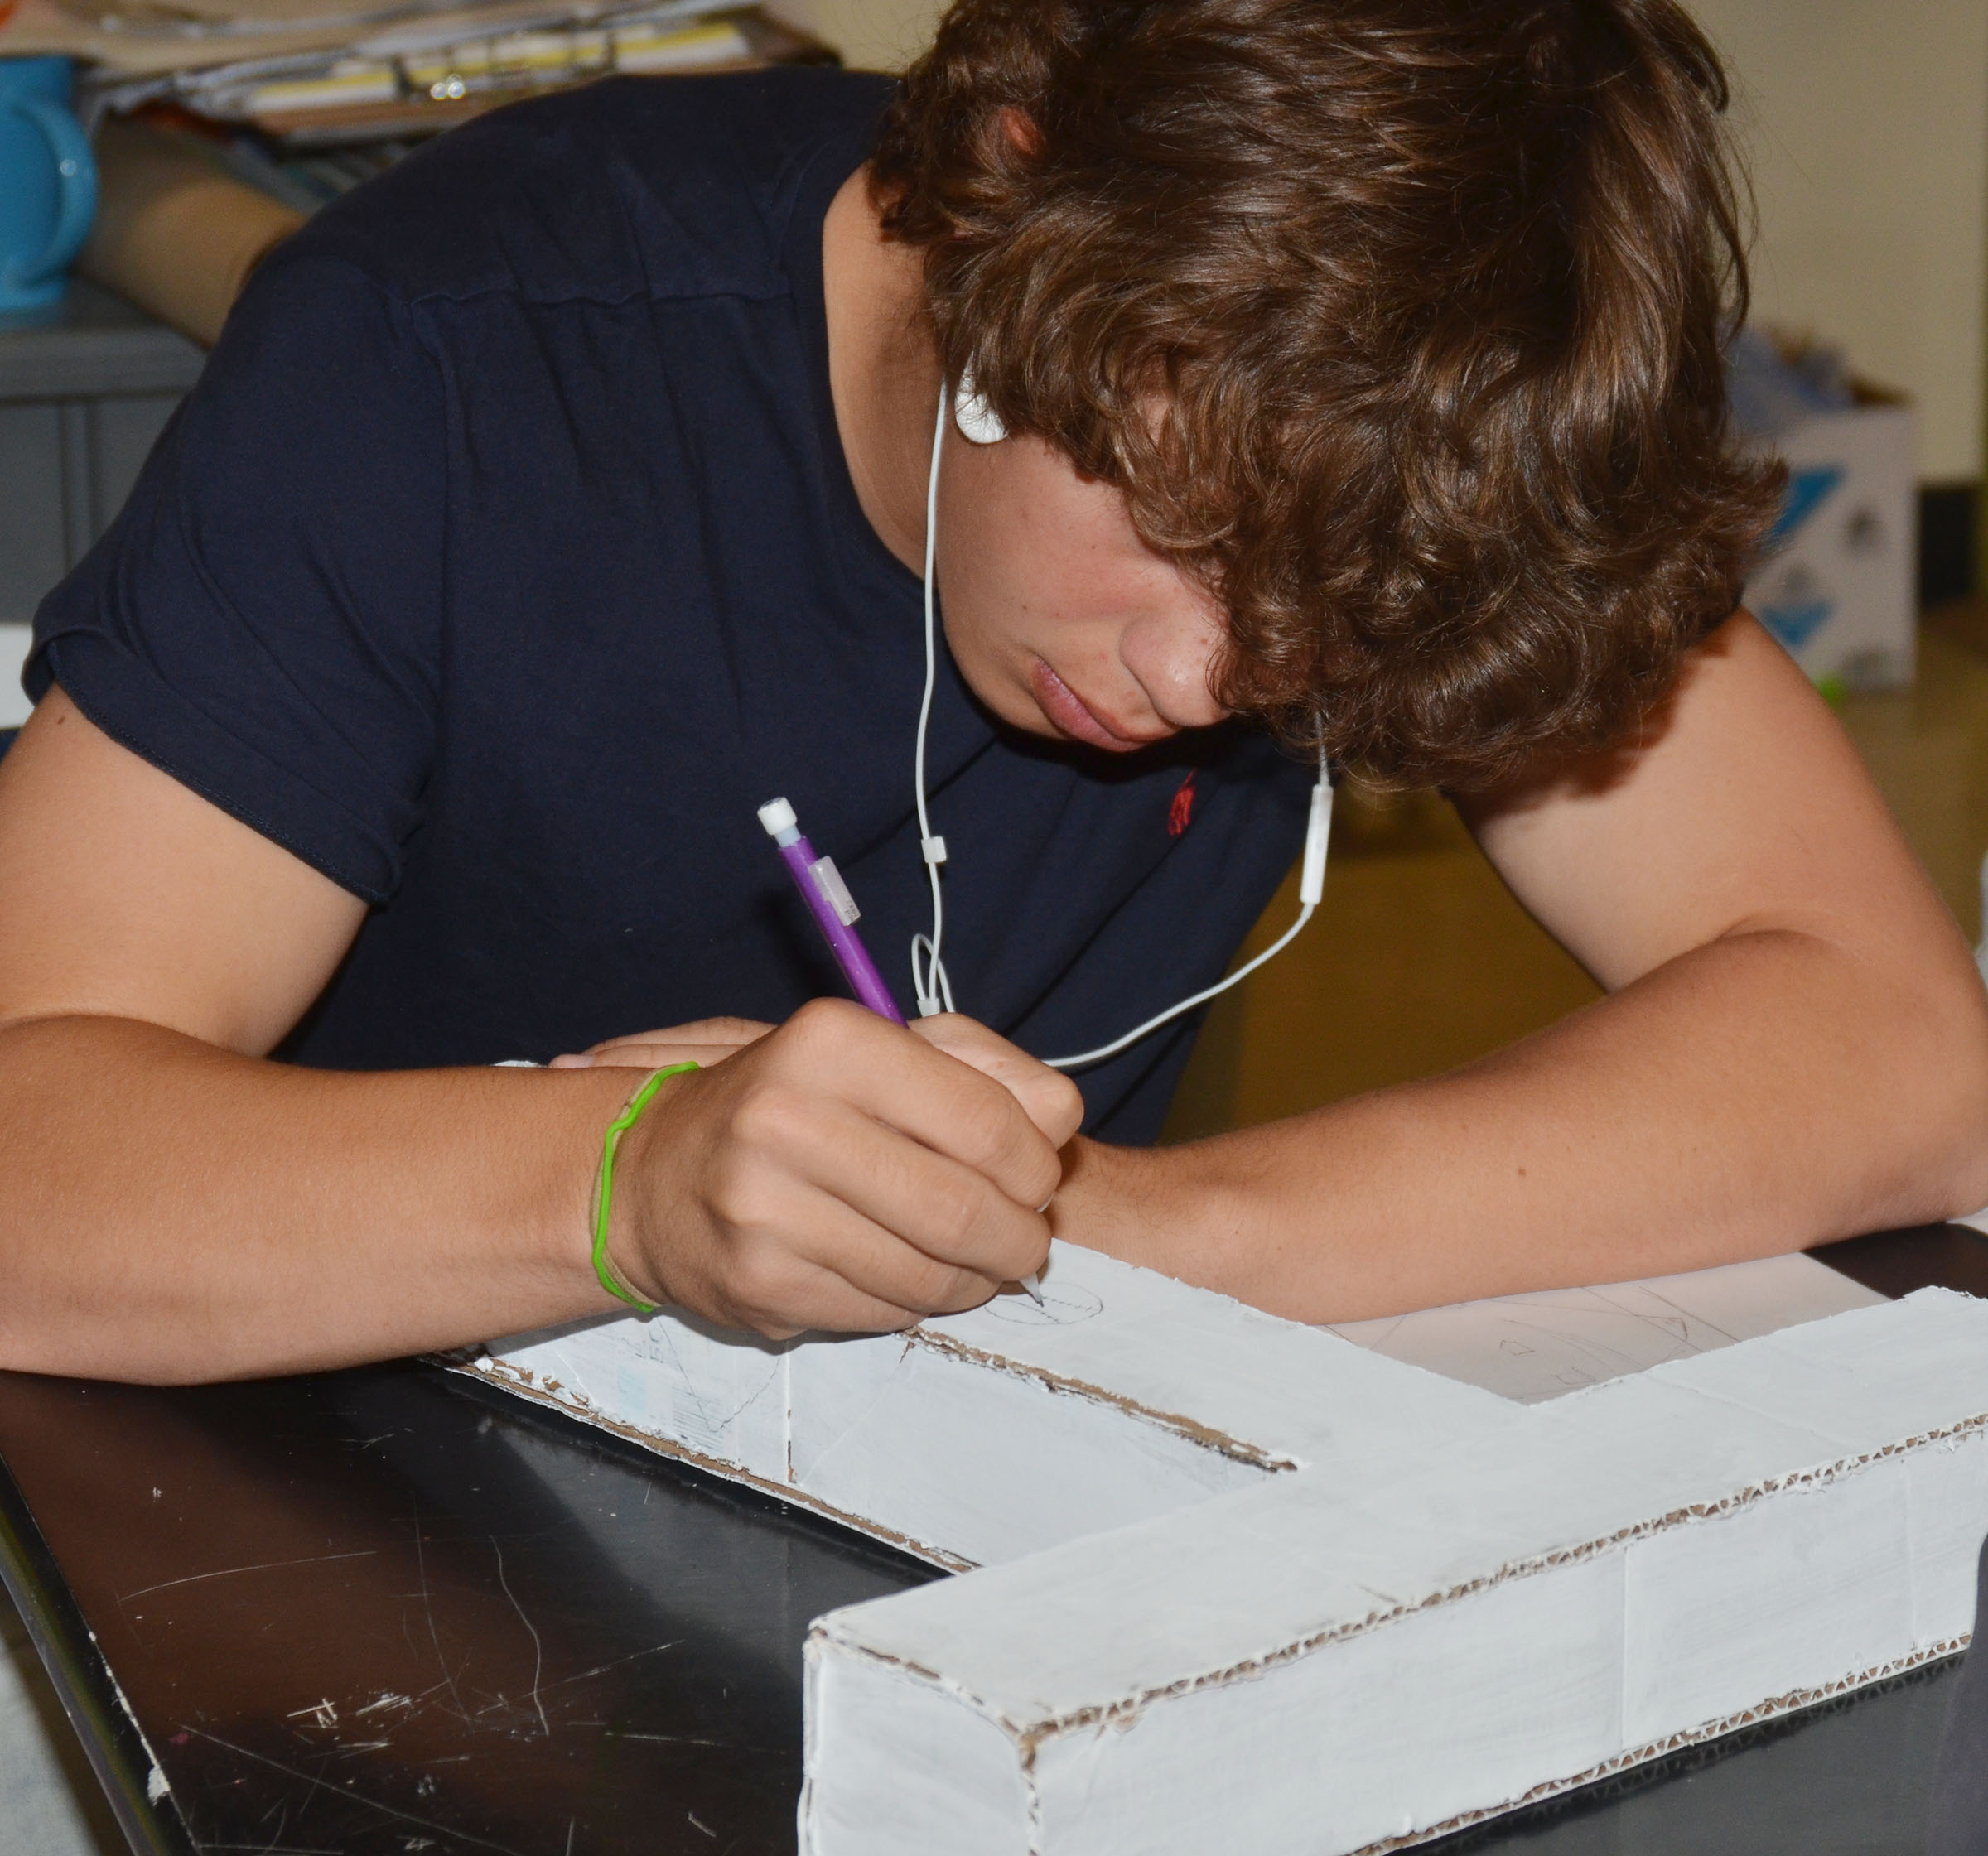 CHS sophomore Treyce Mattingly works on his final art project, a 3D letter.